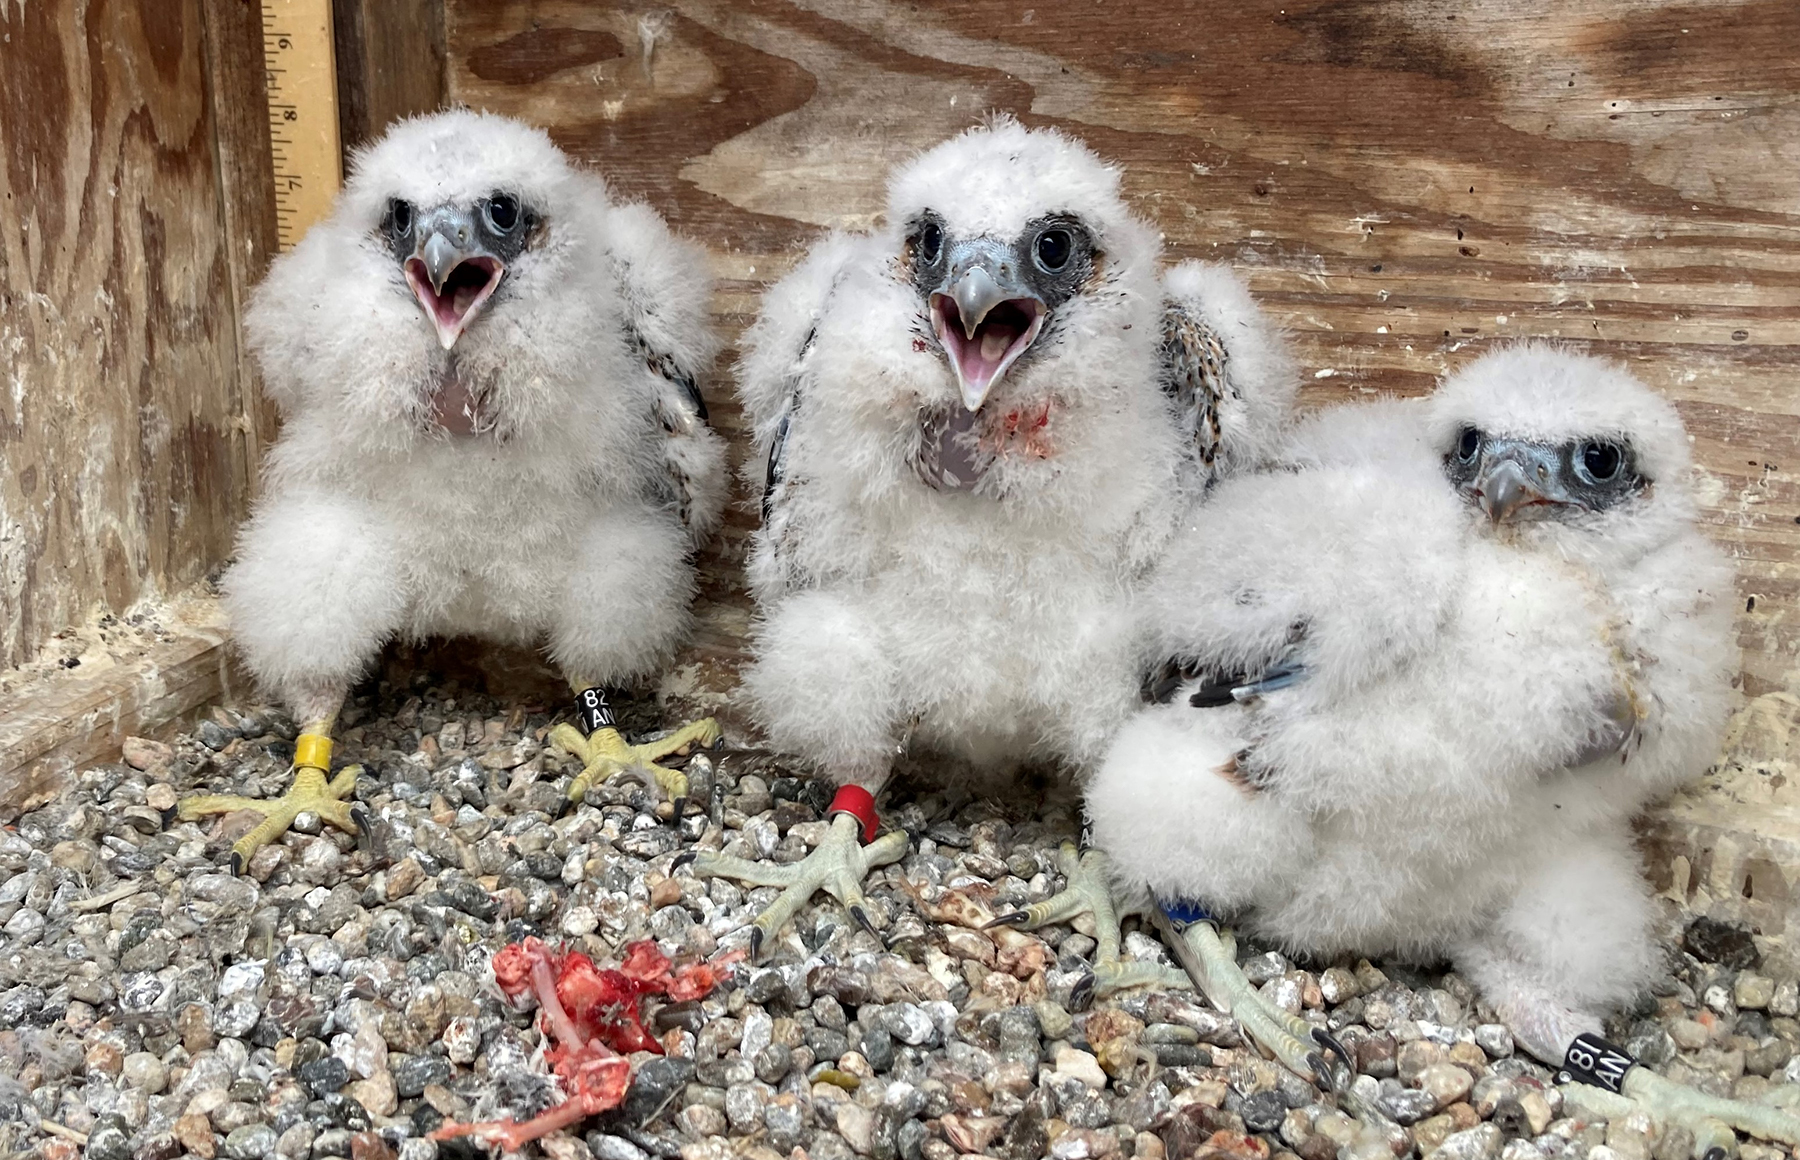 UC Berkeley's peregrine falcon chicks determined to be male